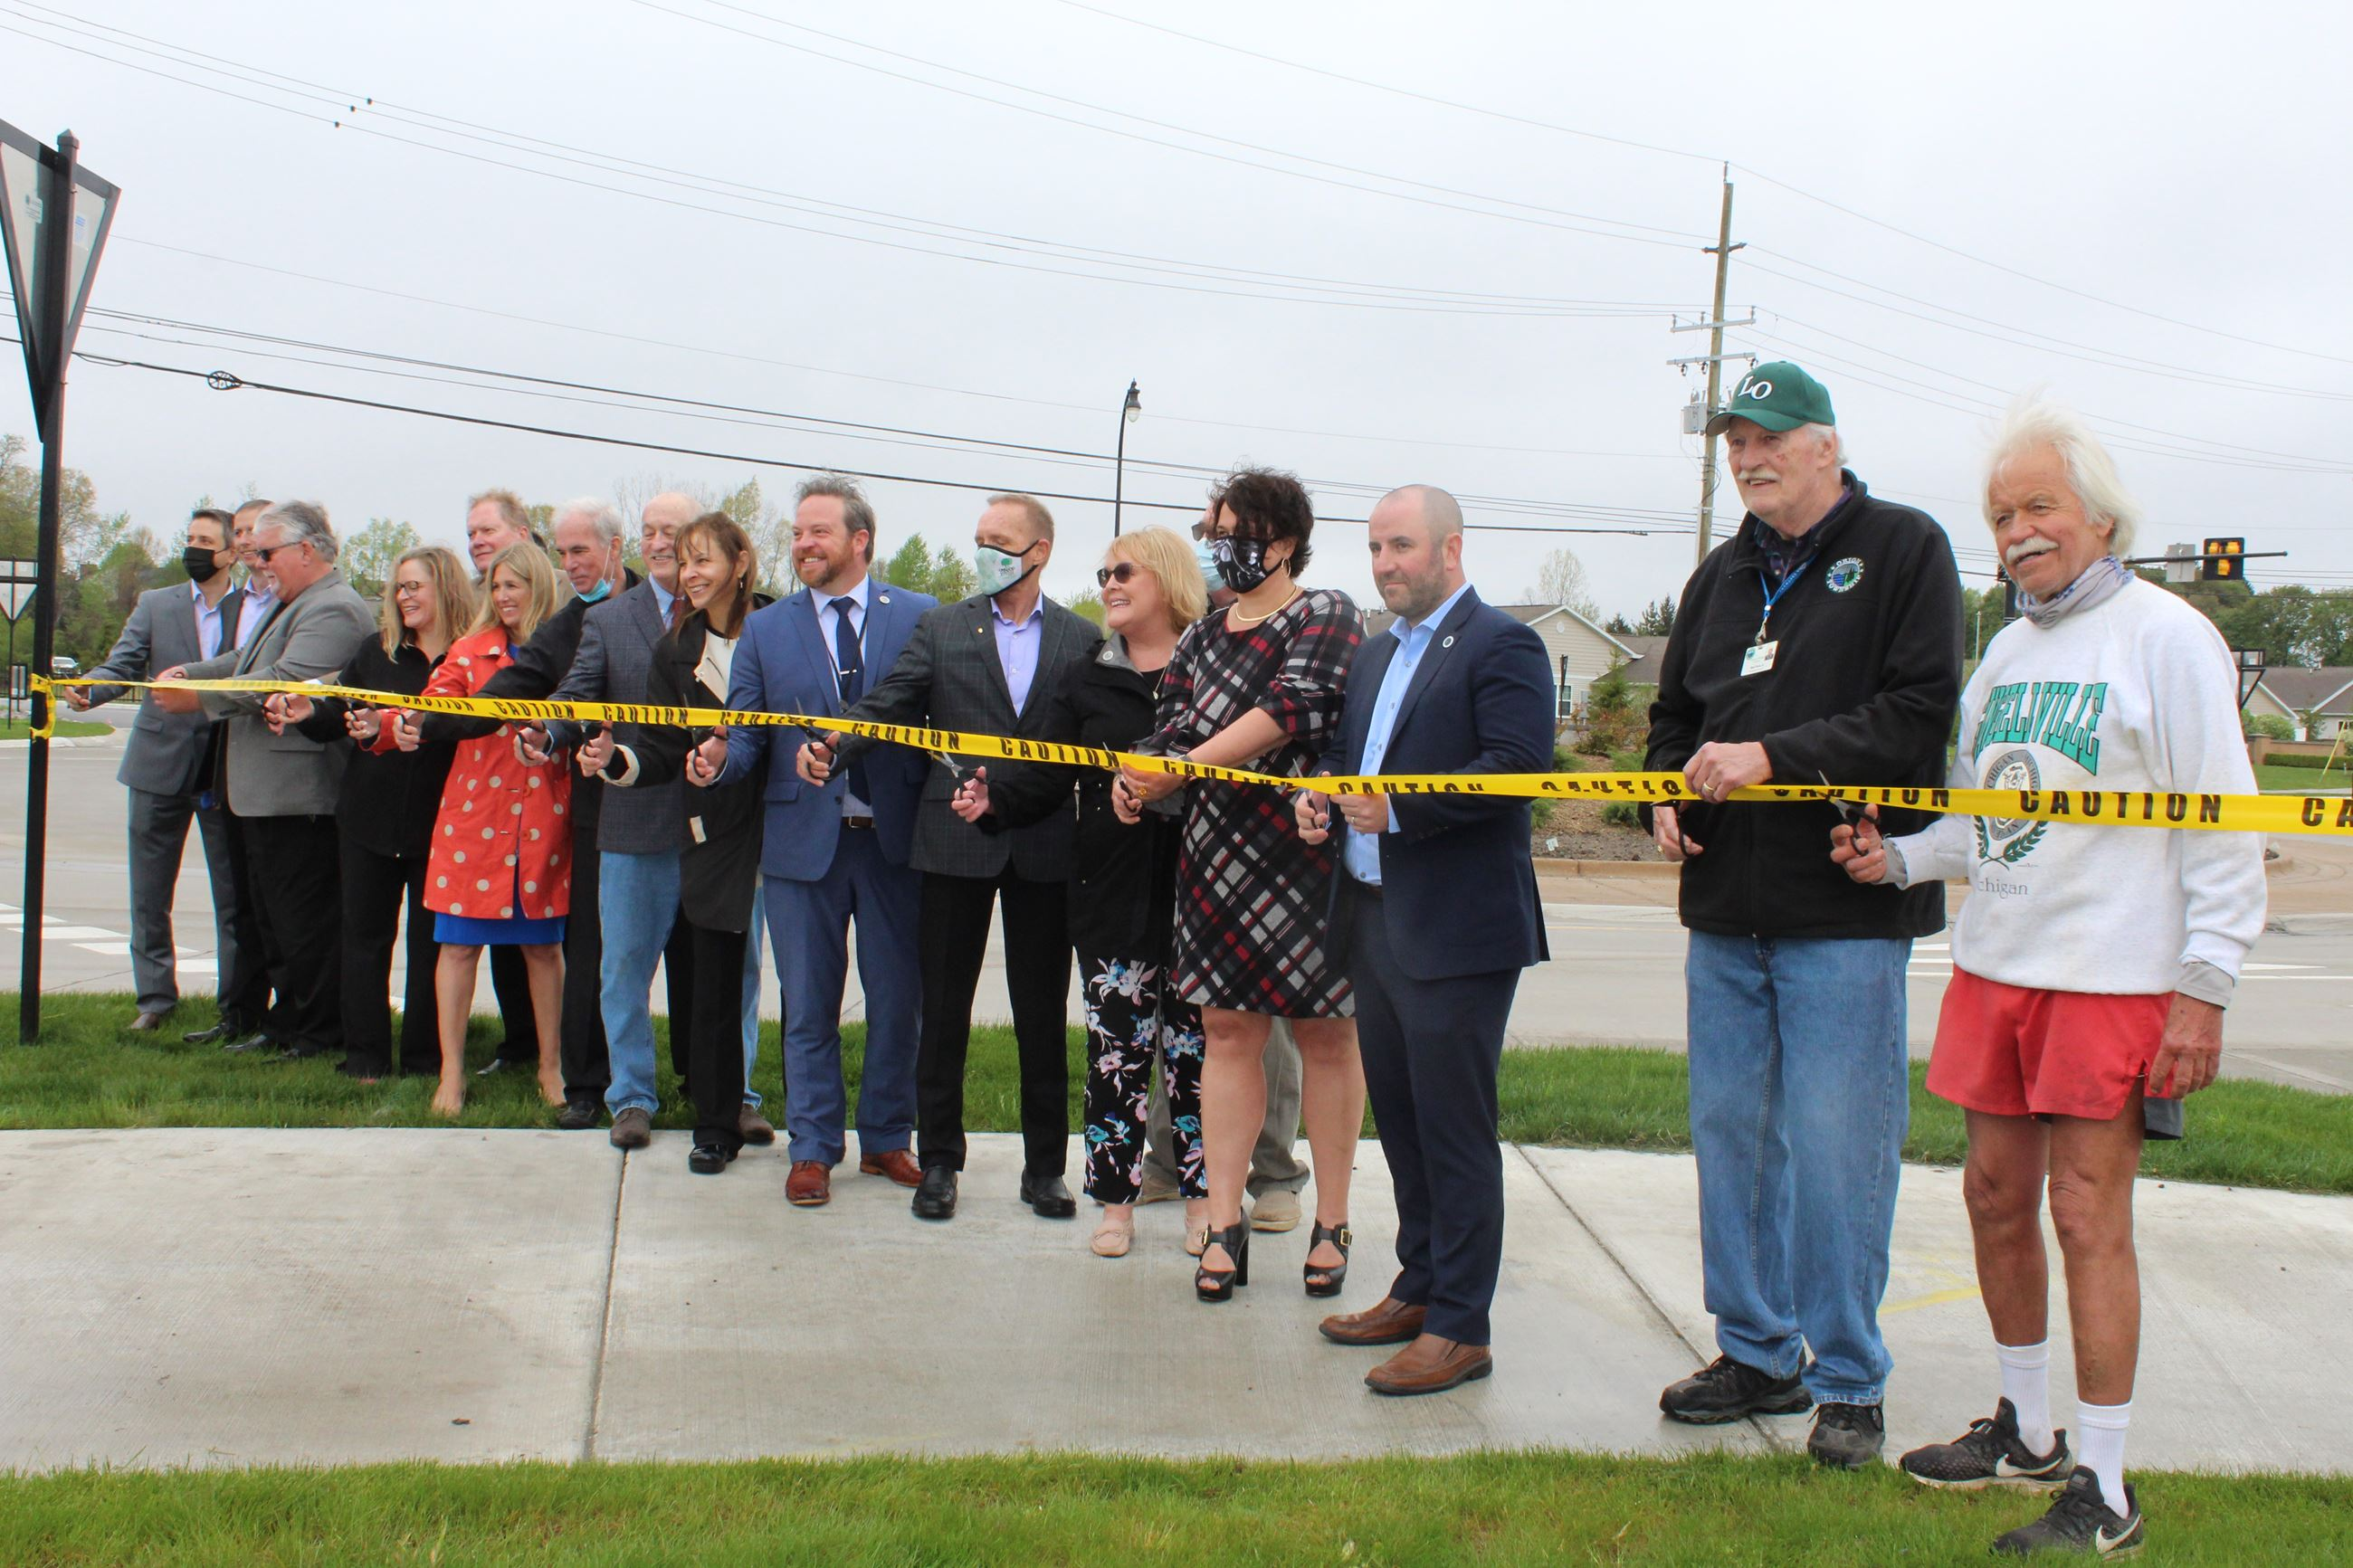 Baldwin Road Ribbon Cutting Ceremony held on May 4, 2021 in Orion Township